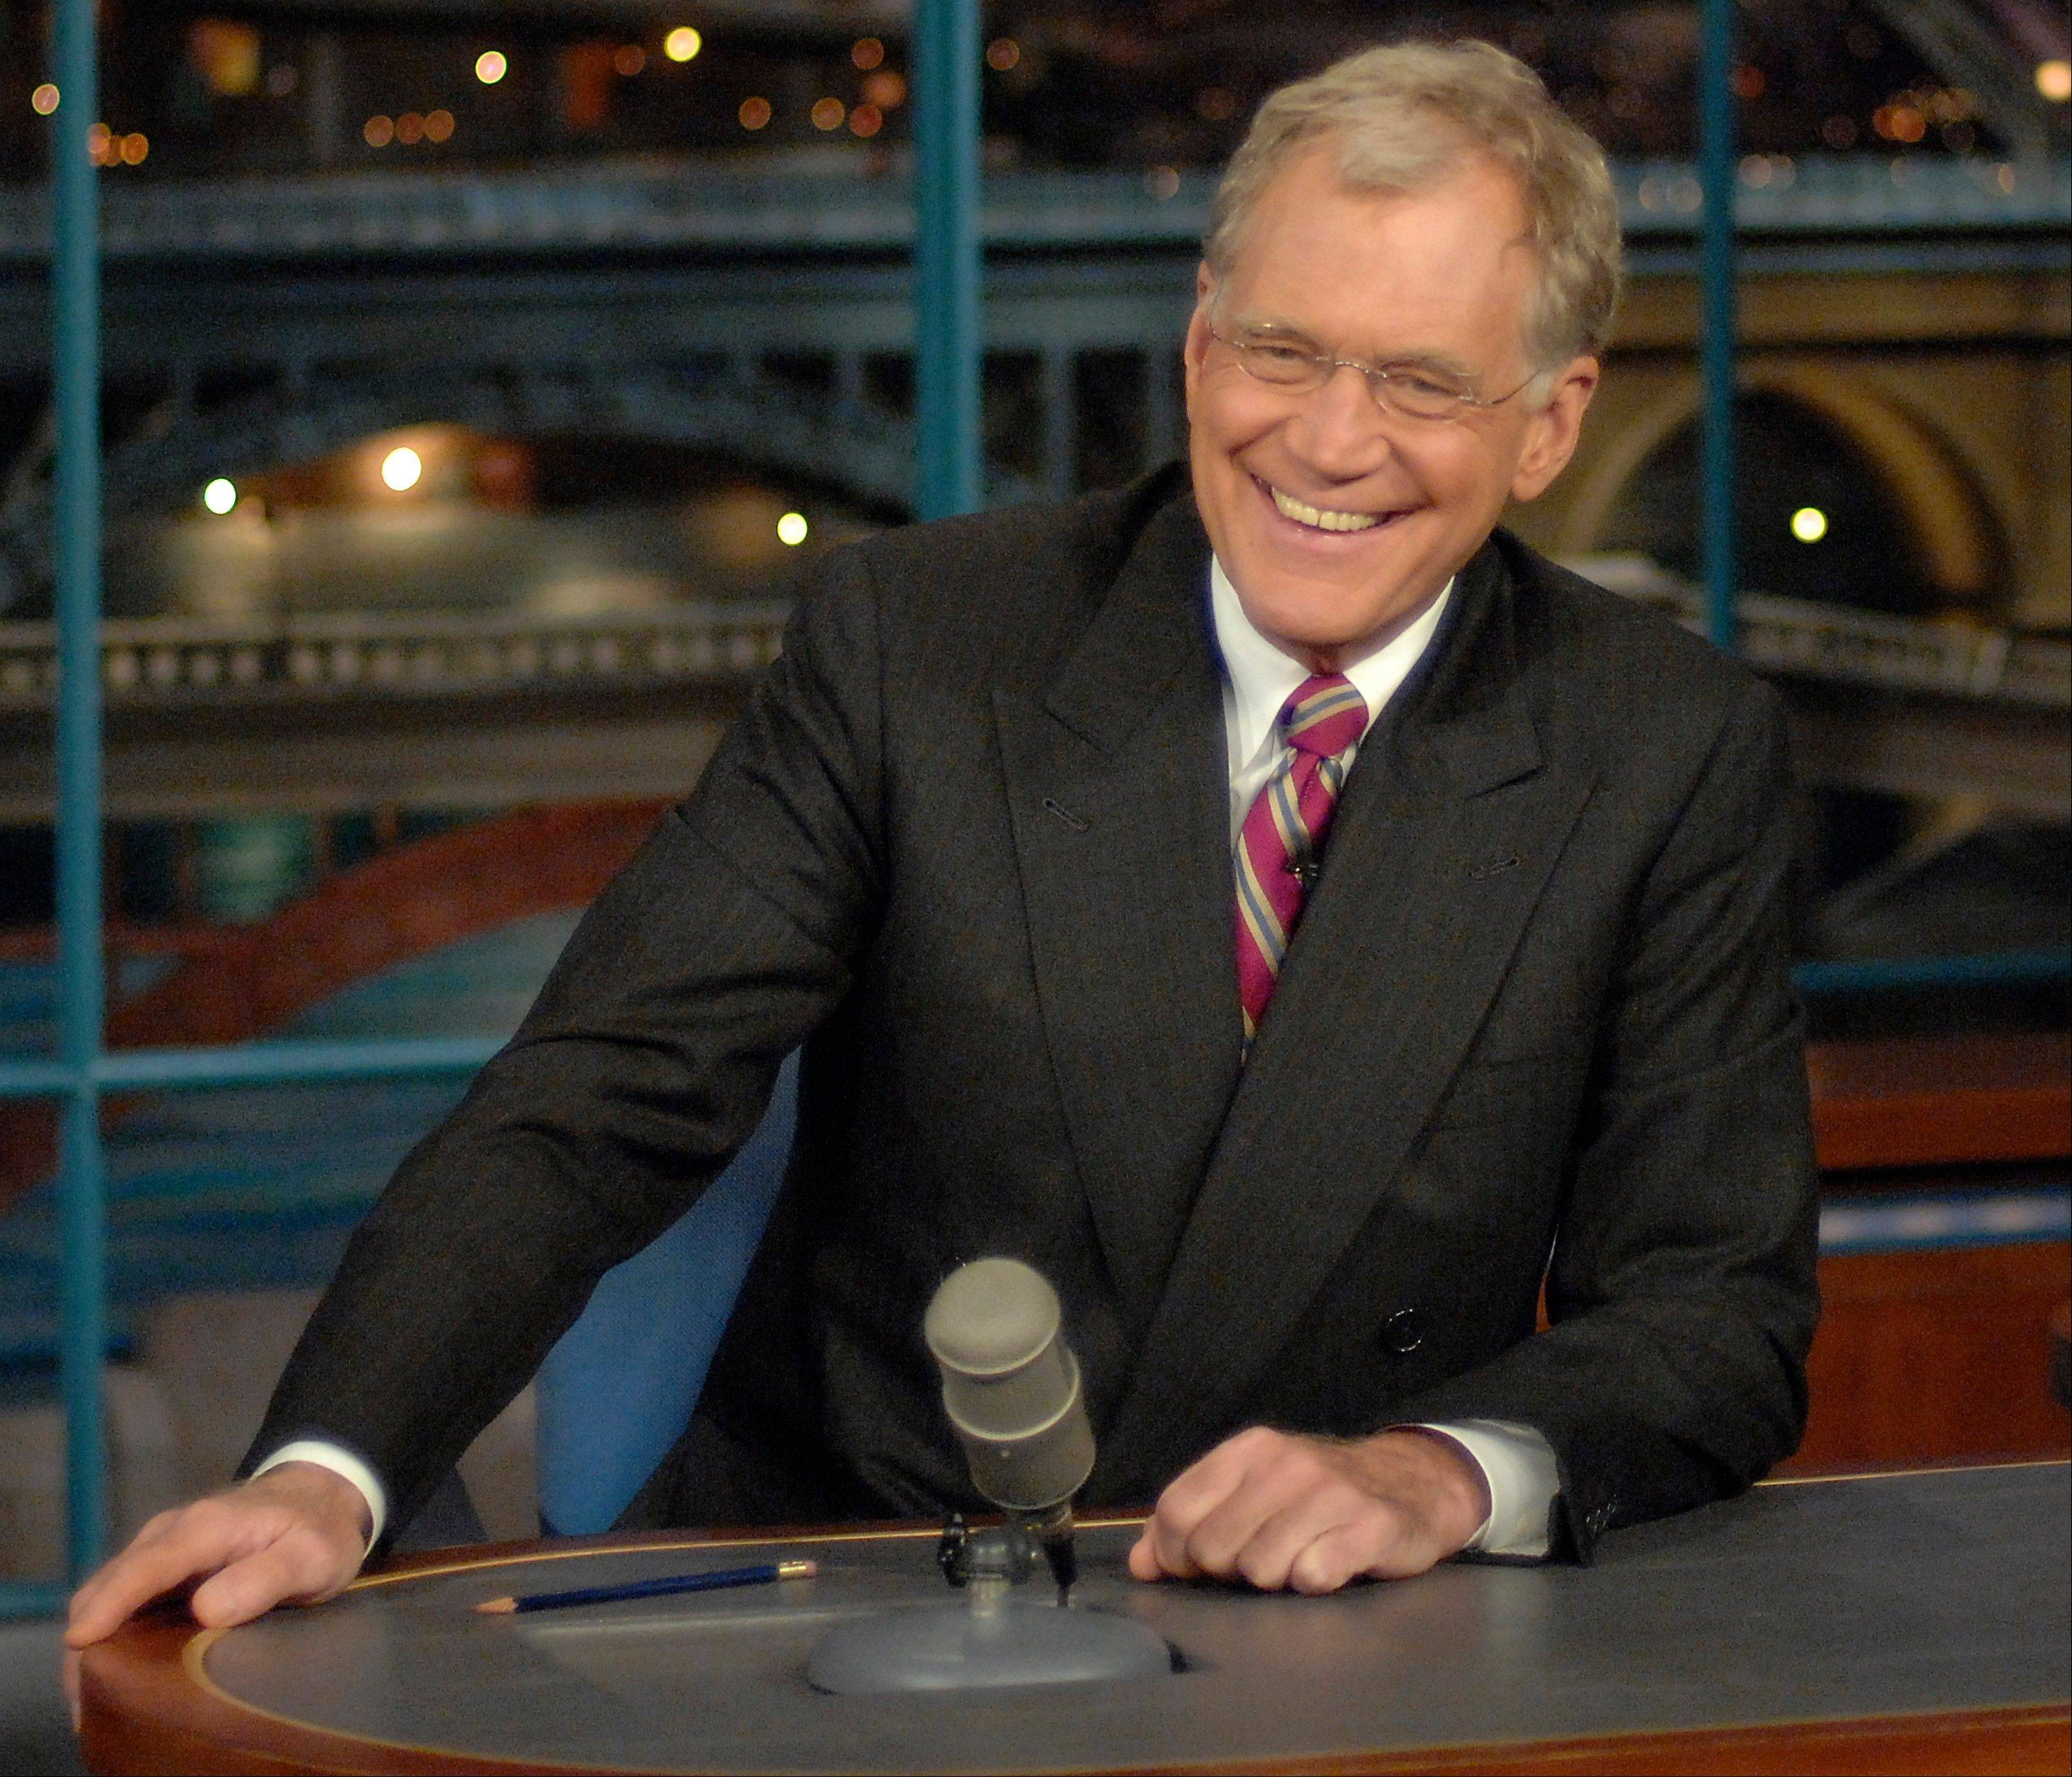 David Letterman and Dustin Hoffman are among seven people receiving the 2012 Kennedy Center Honors.